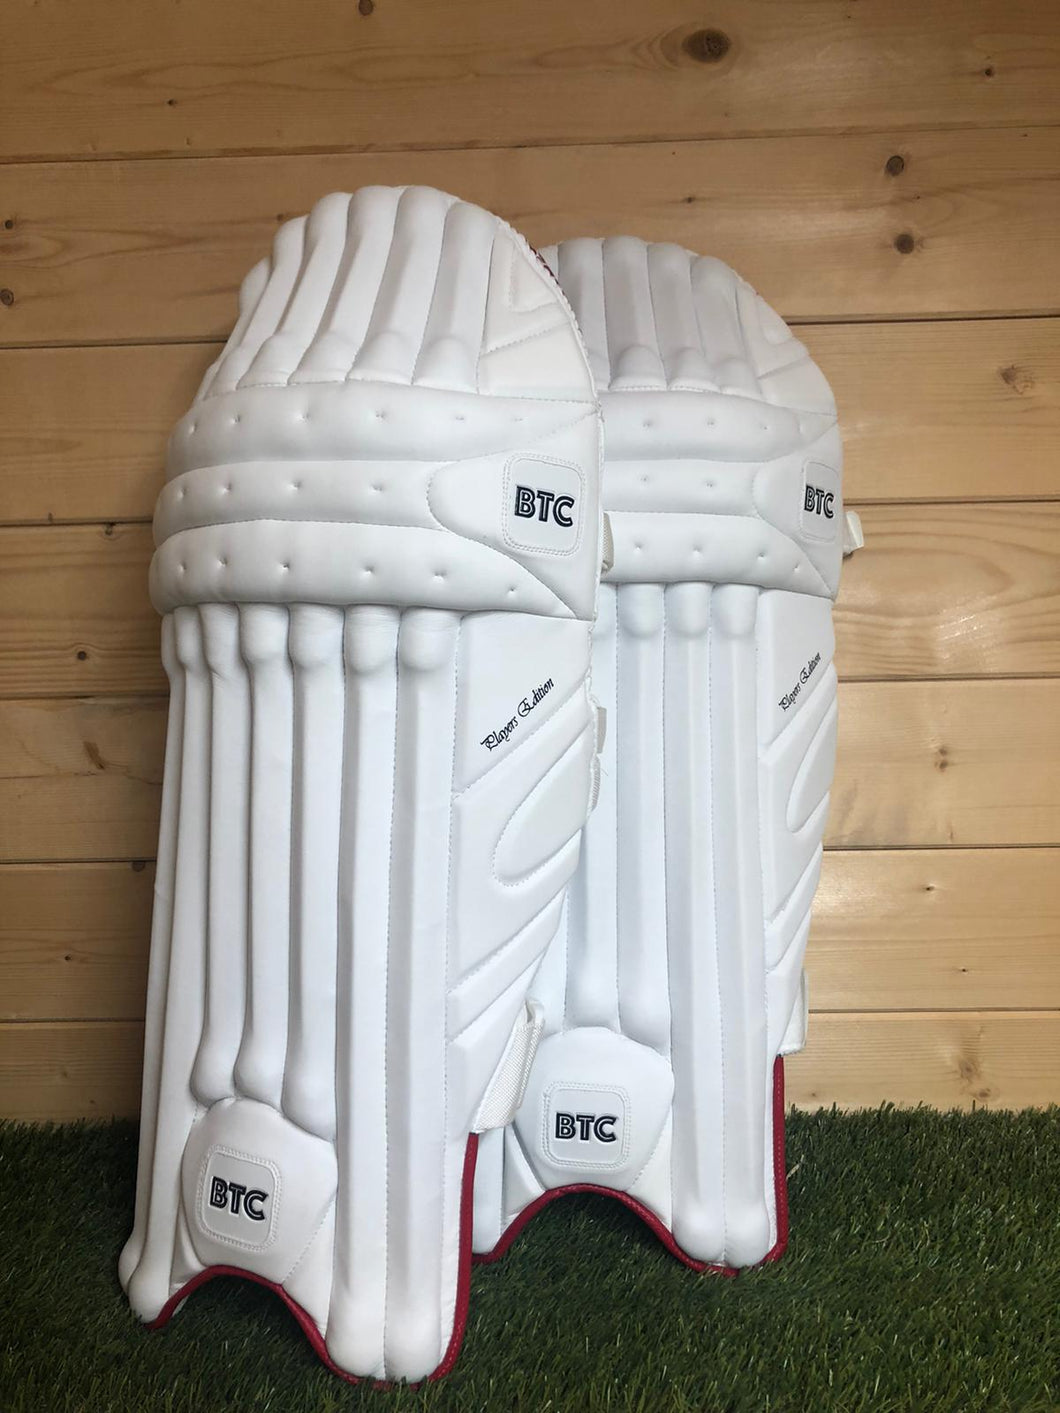 BTC Players Edition Batting Pads